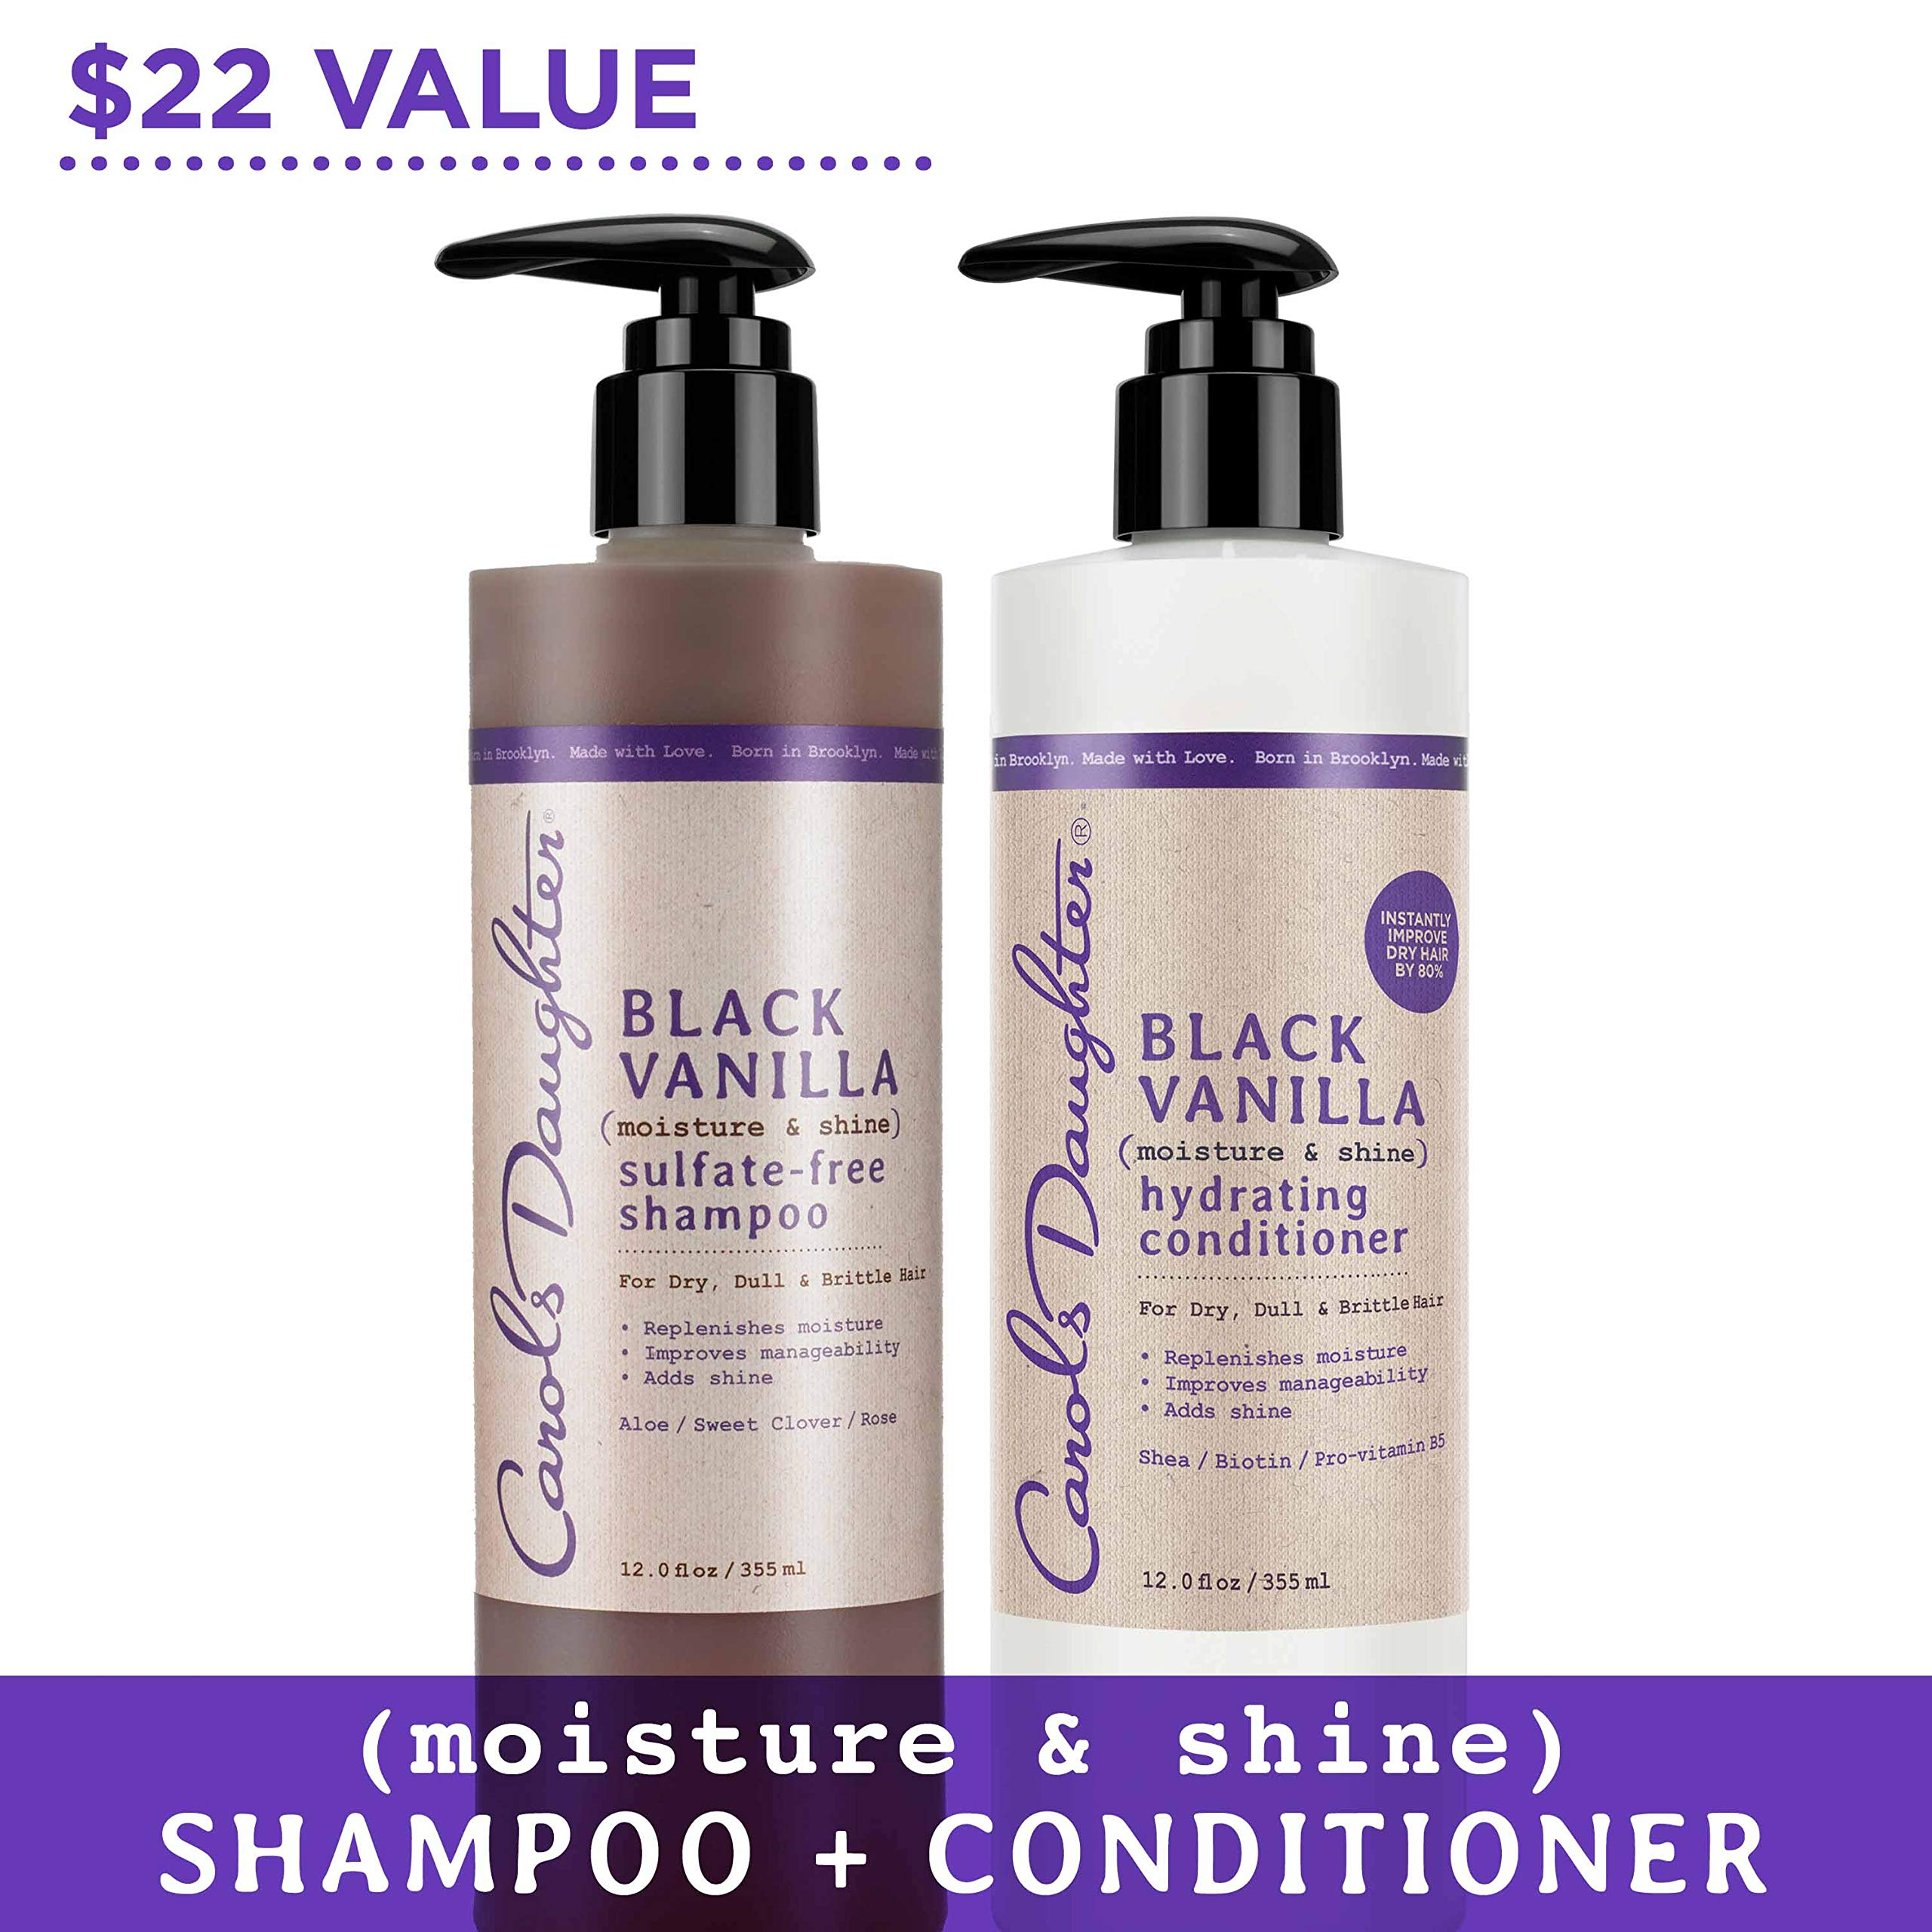 Carol's Daughter Black Vanilla Hair Care Gift Set for Dry/Dull & Brittle Hair by Carol's Daughter